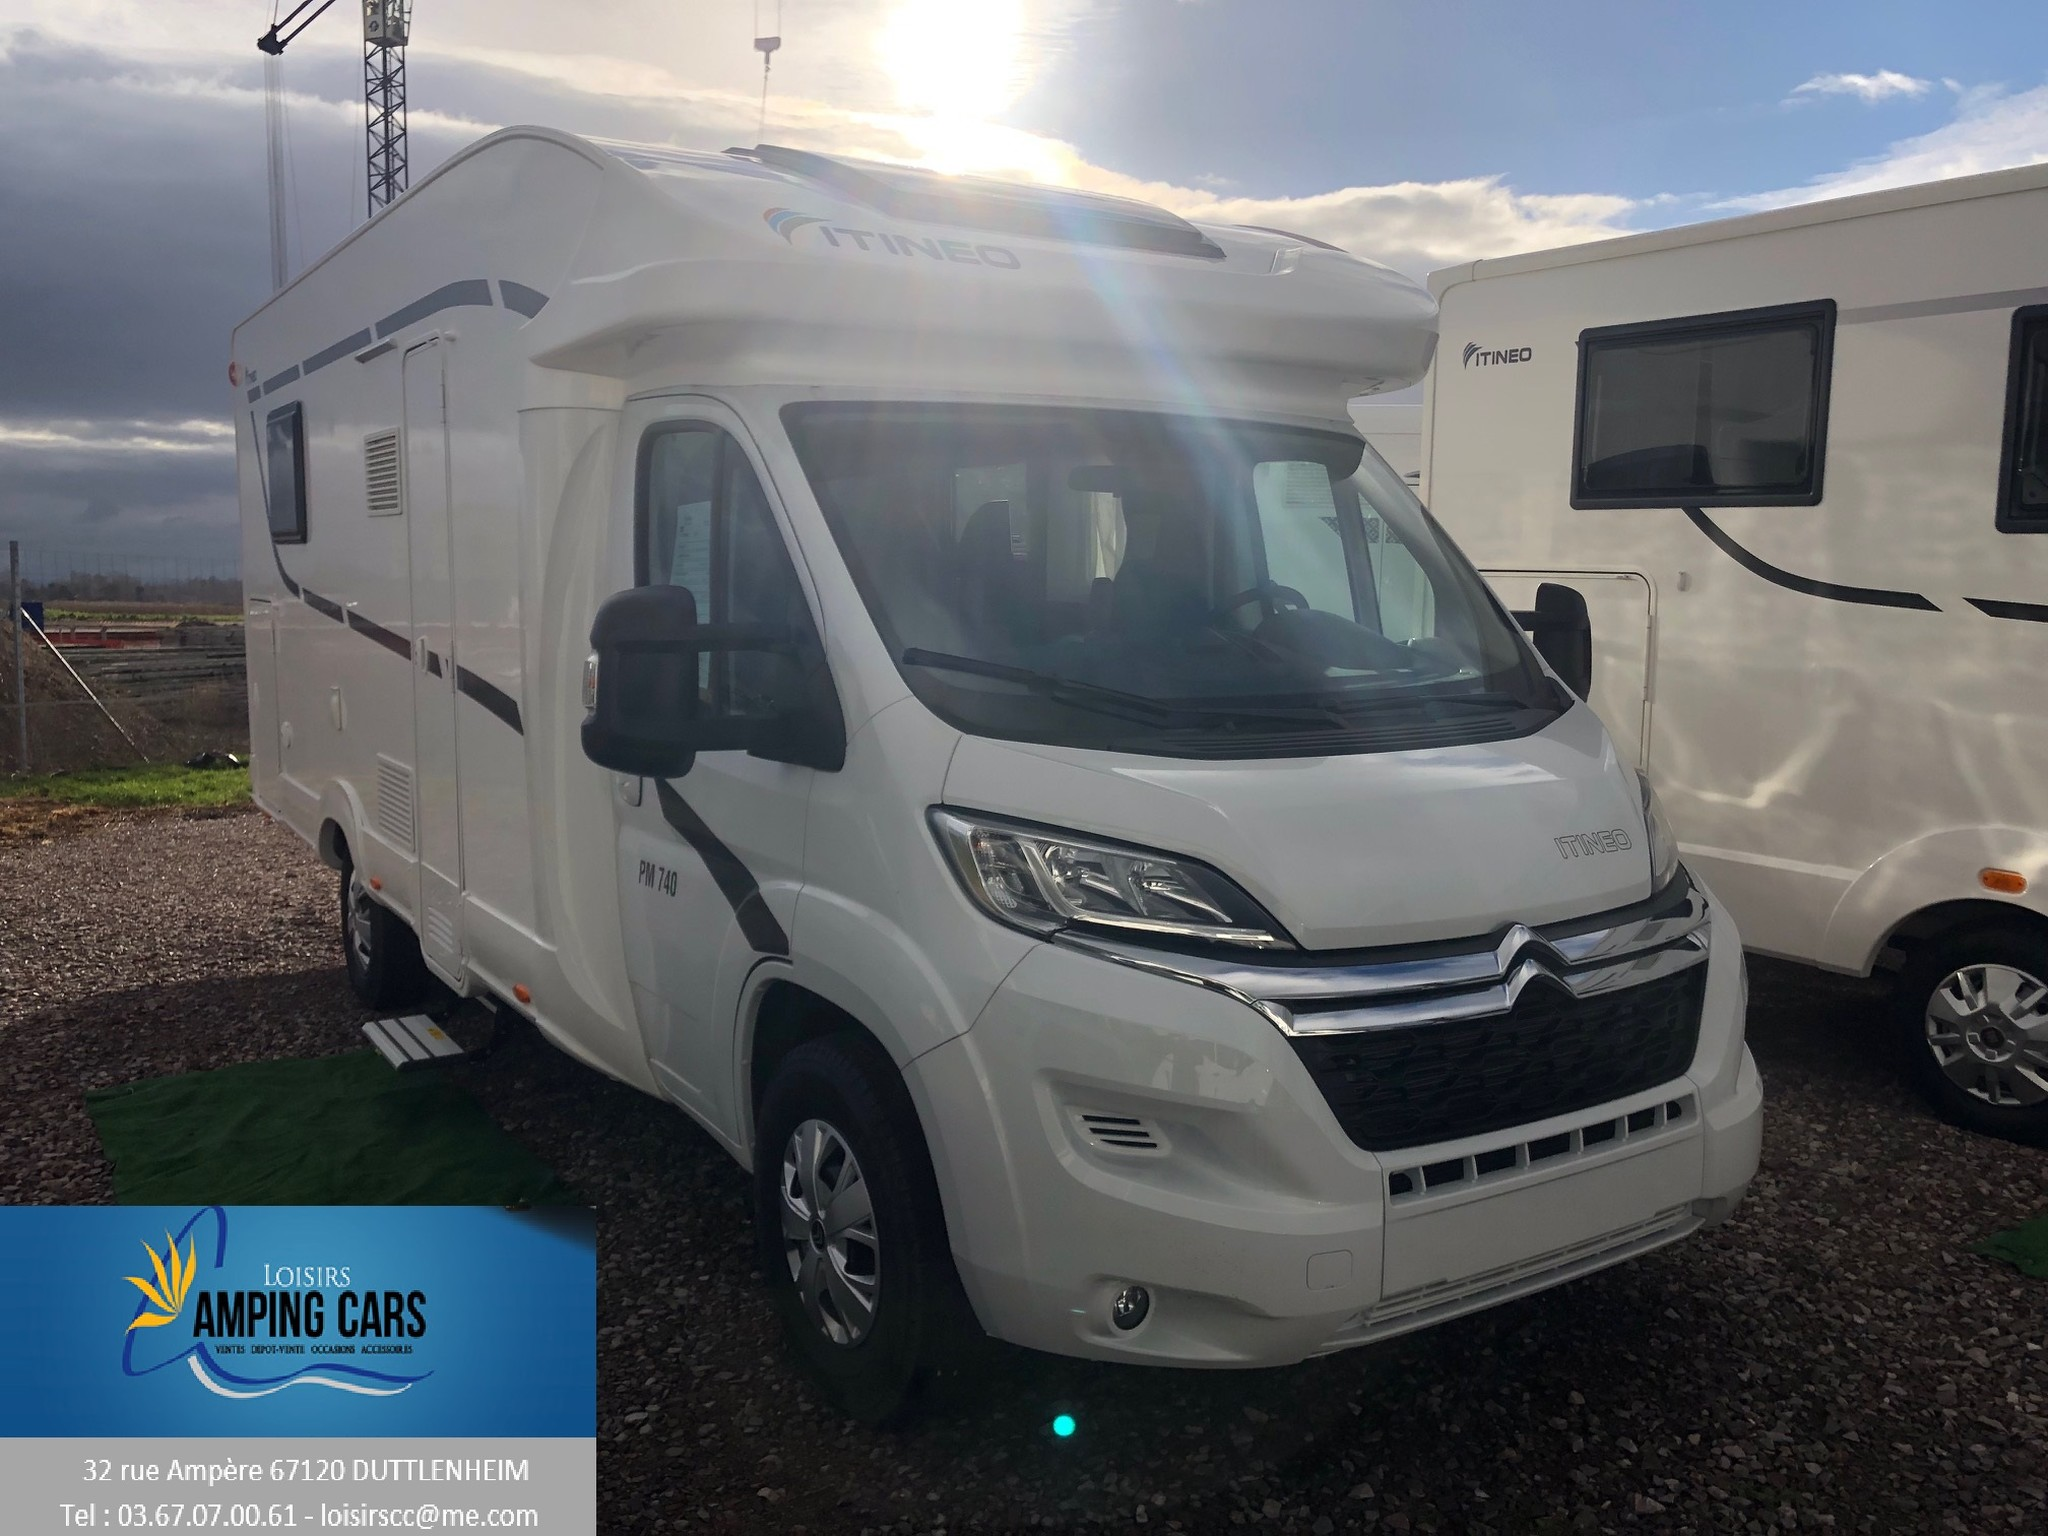 Camping-car ITINEO PM 740